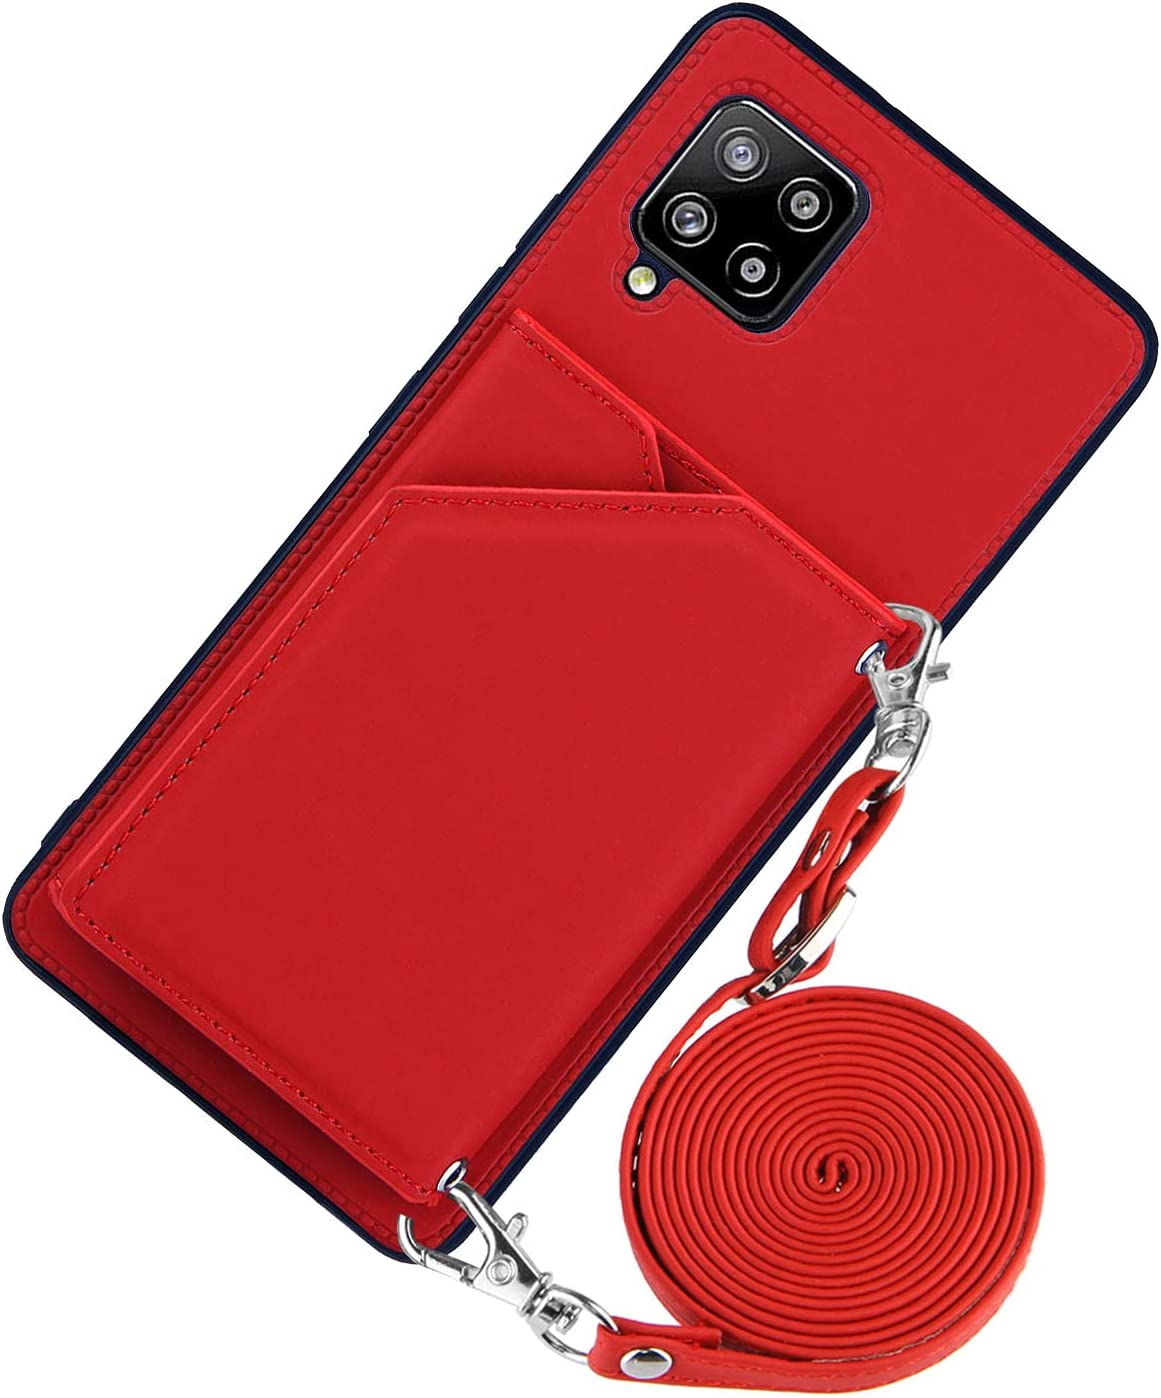 DAMONDY for Samsung A42 Case,Wallet Card Holder Lanyard Neck Crossbody Detachable Strap Protective Square Flip Slim Cover Soft PU Leather Double Magnetic Clasp for Samsung Galaxy A42 -Red